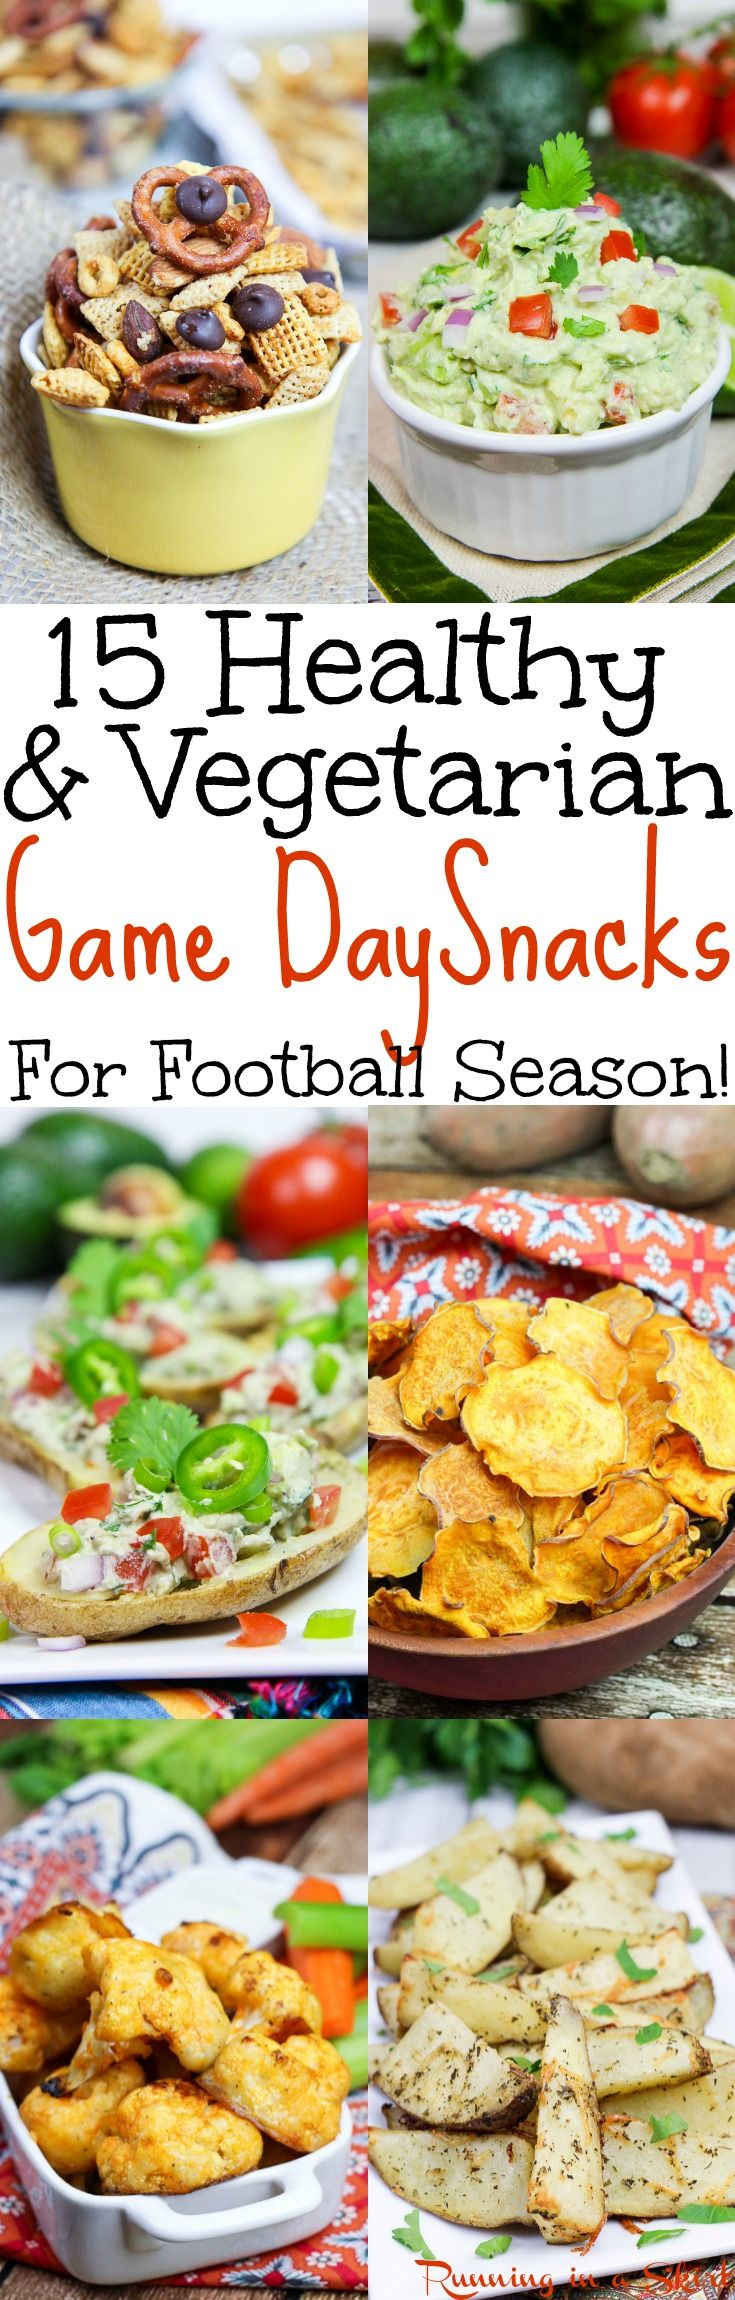 15 Healthy & Vegetarian Game Day Snacks for football